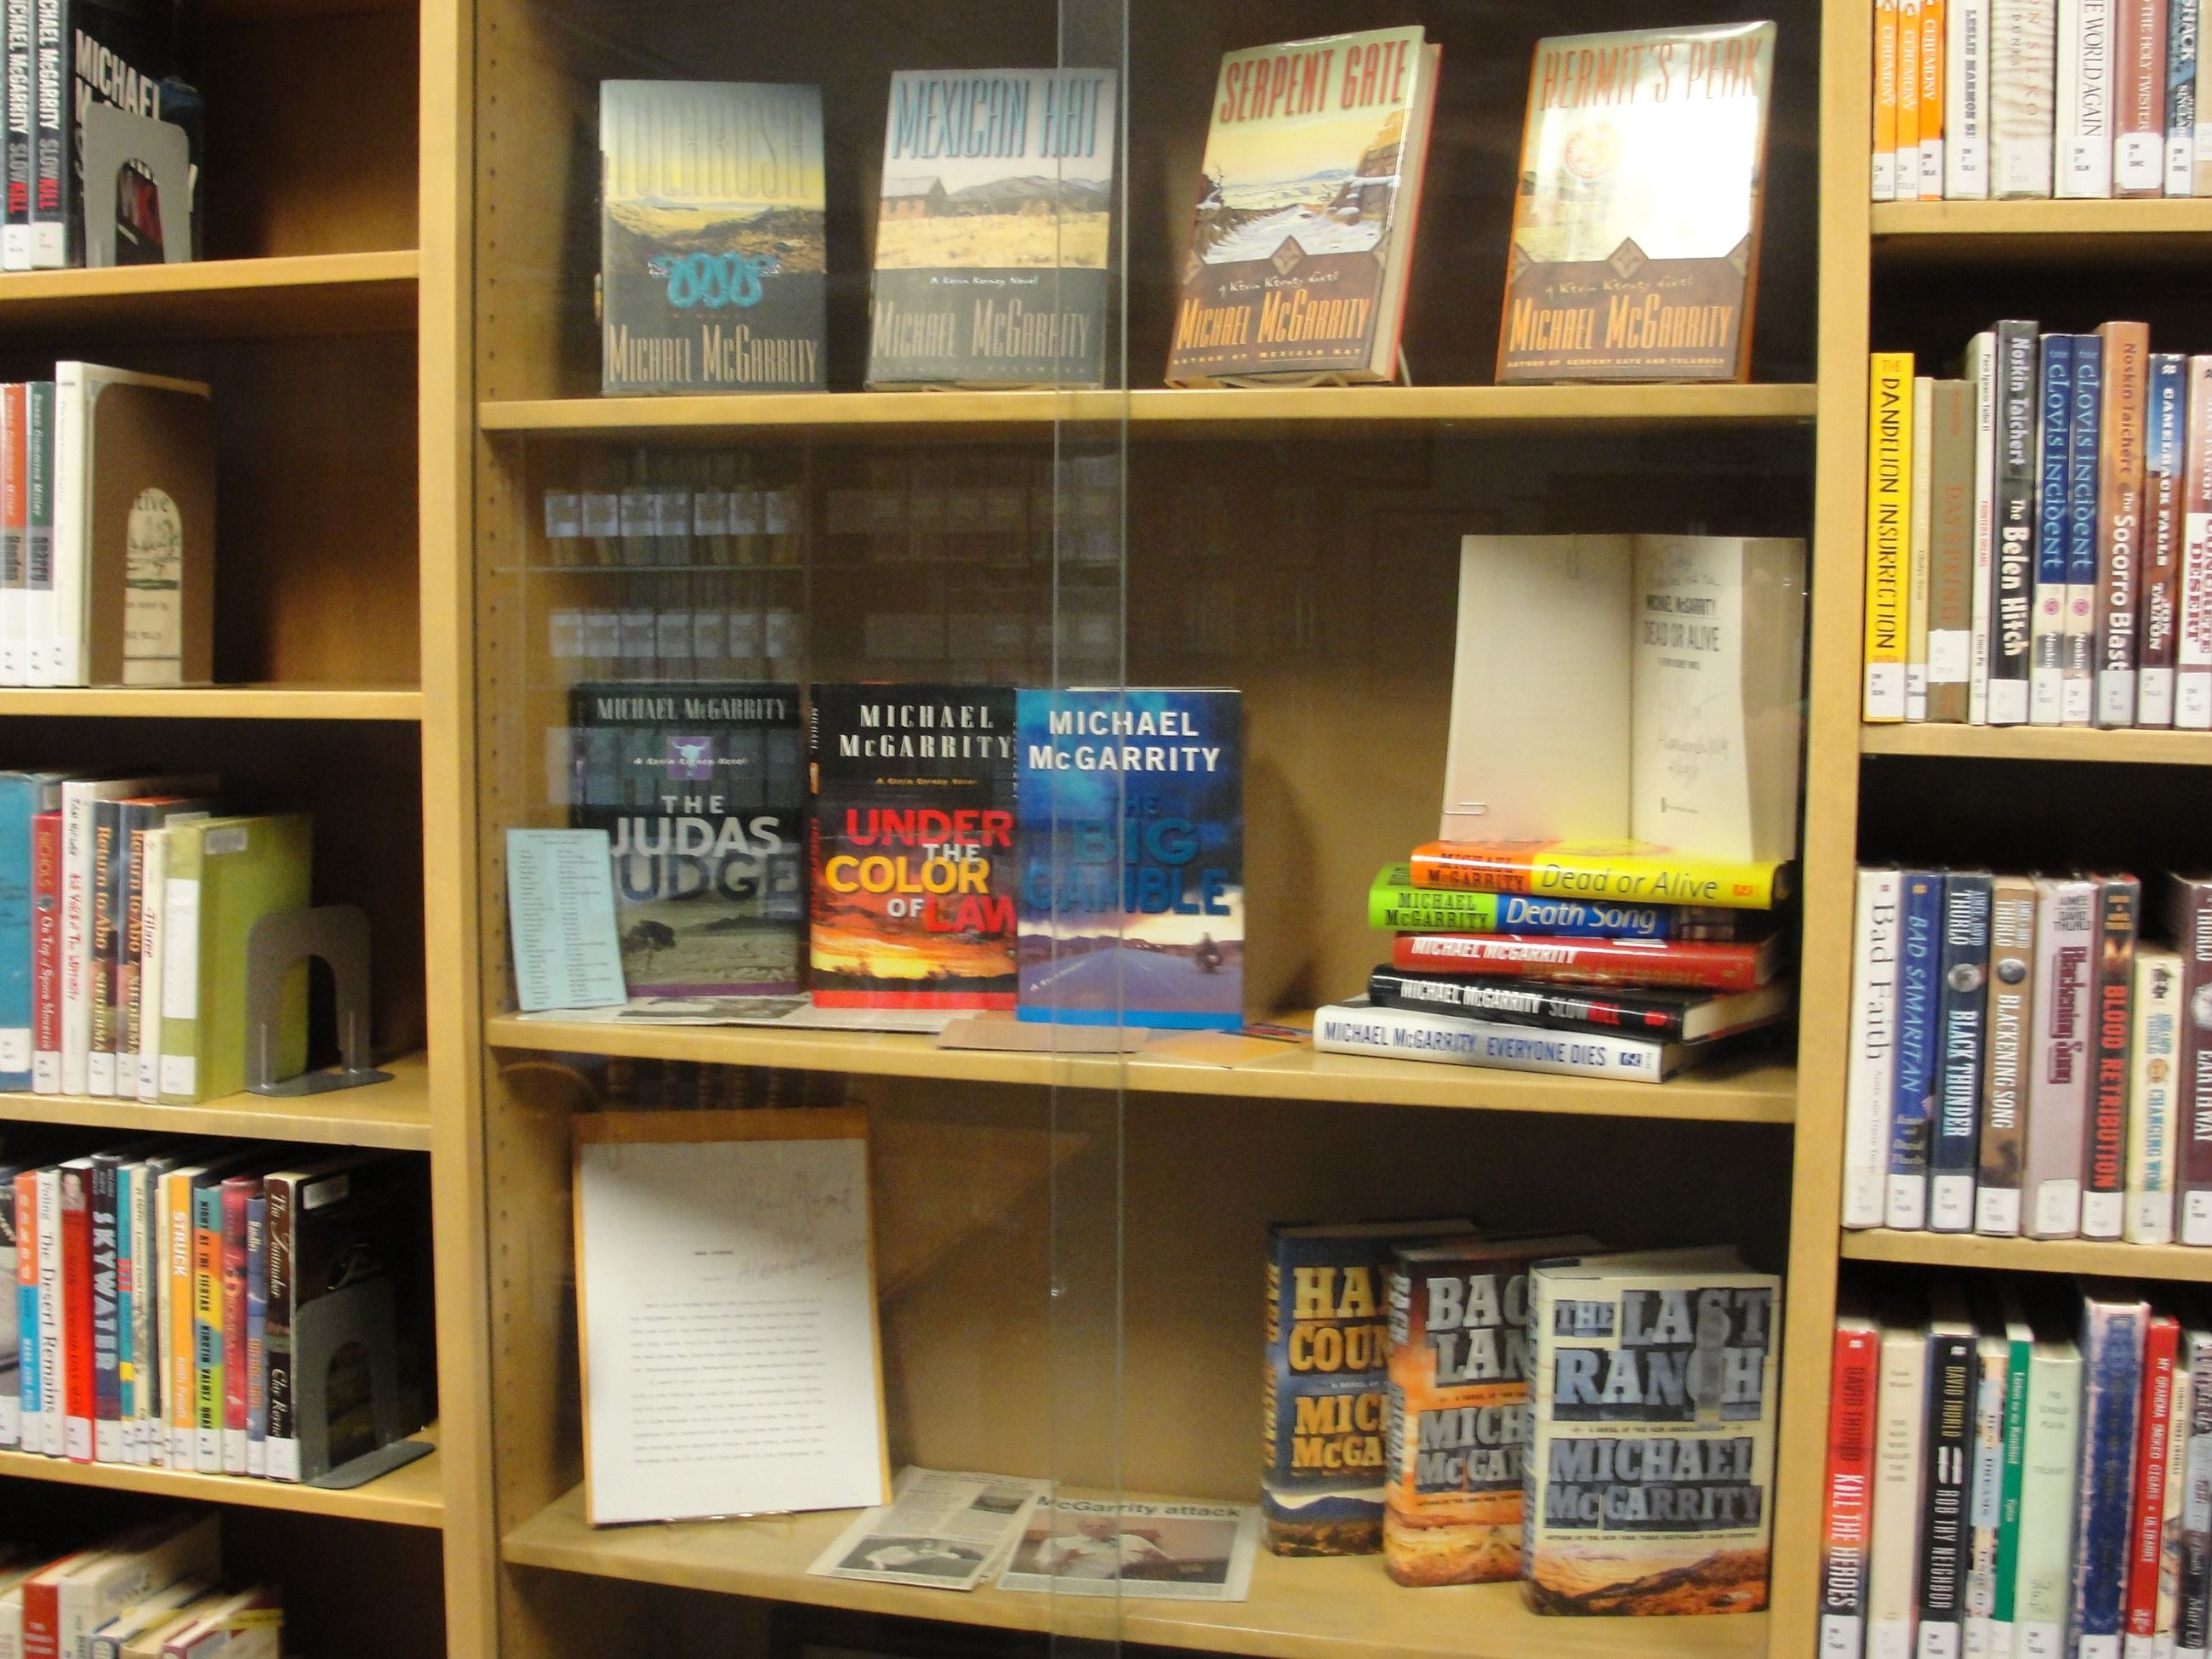 Michael McGarrity books on display in the library.